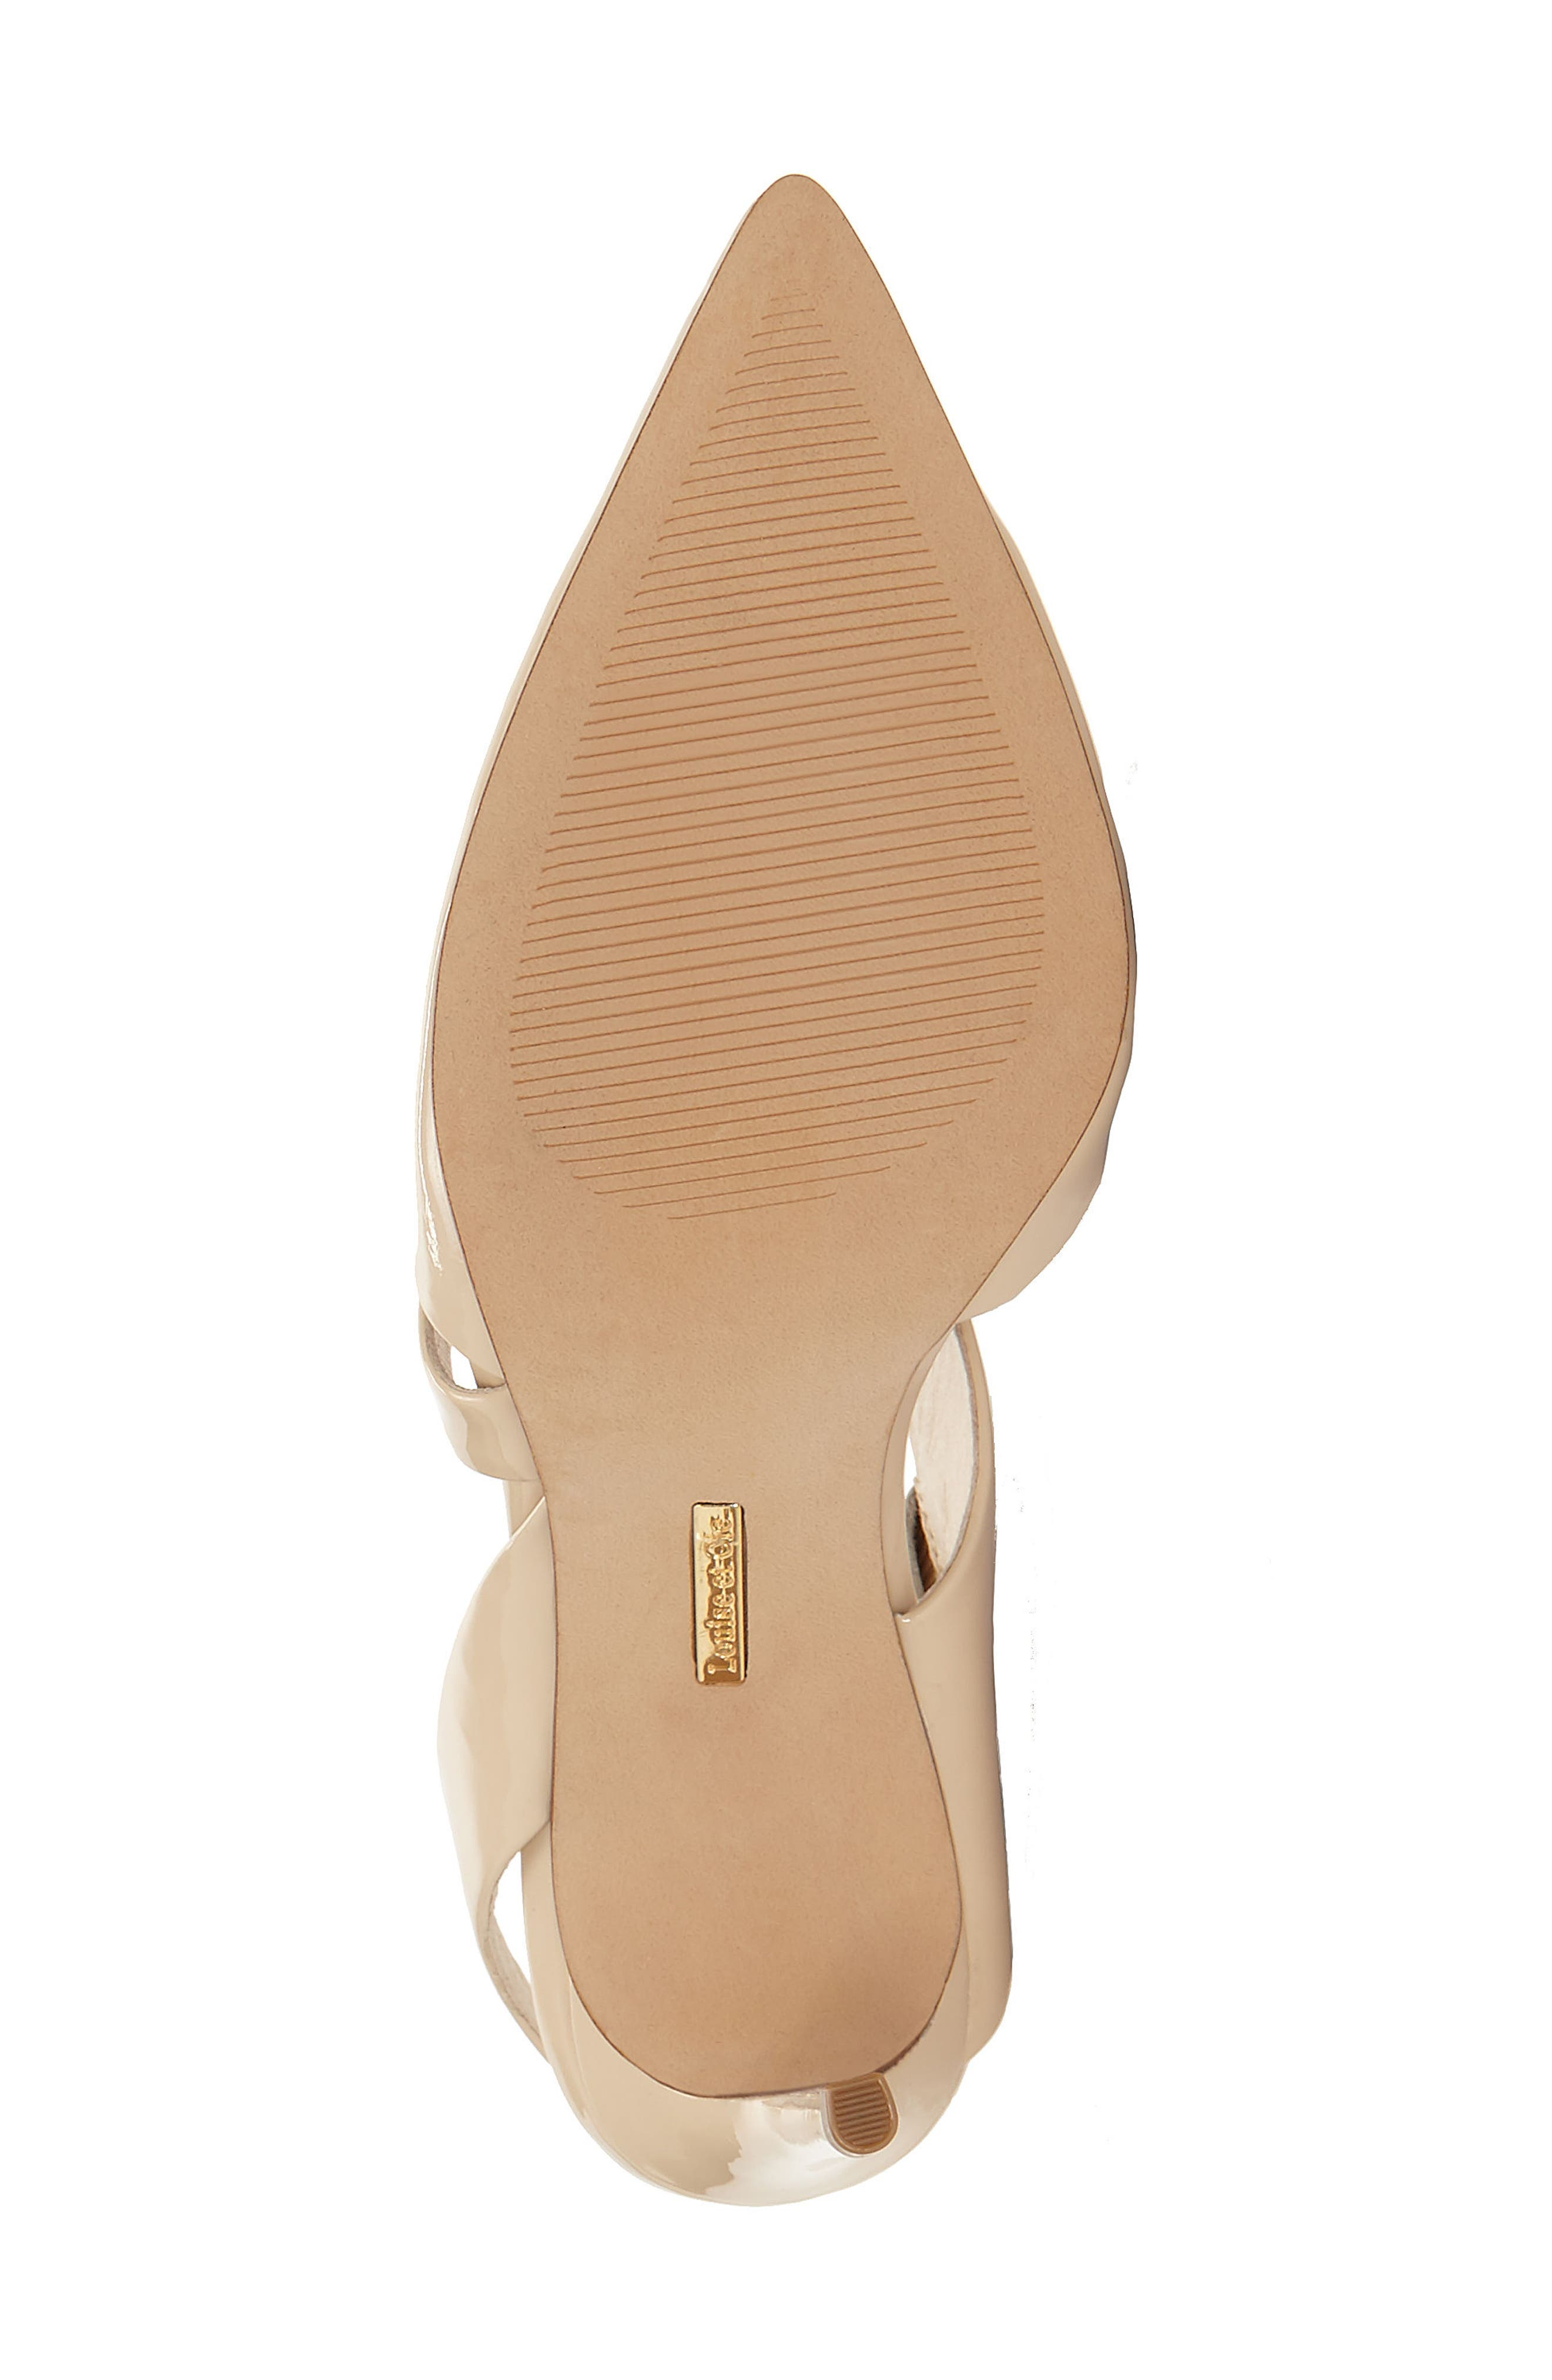 Jerry Pointy Toe Slingback Pump,                             Alternate thumbnail 6, color,                             Odessa Patent